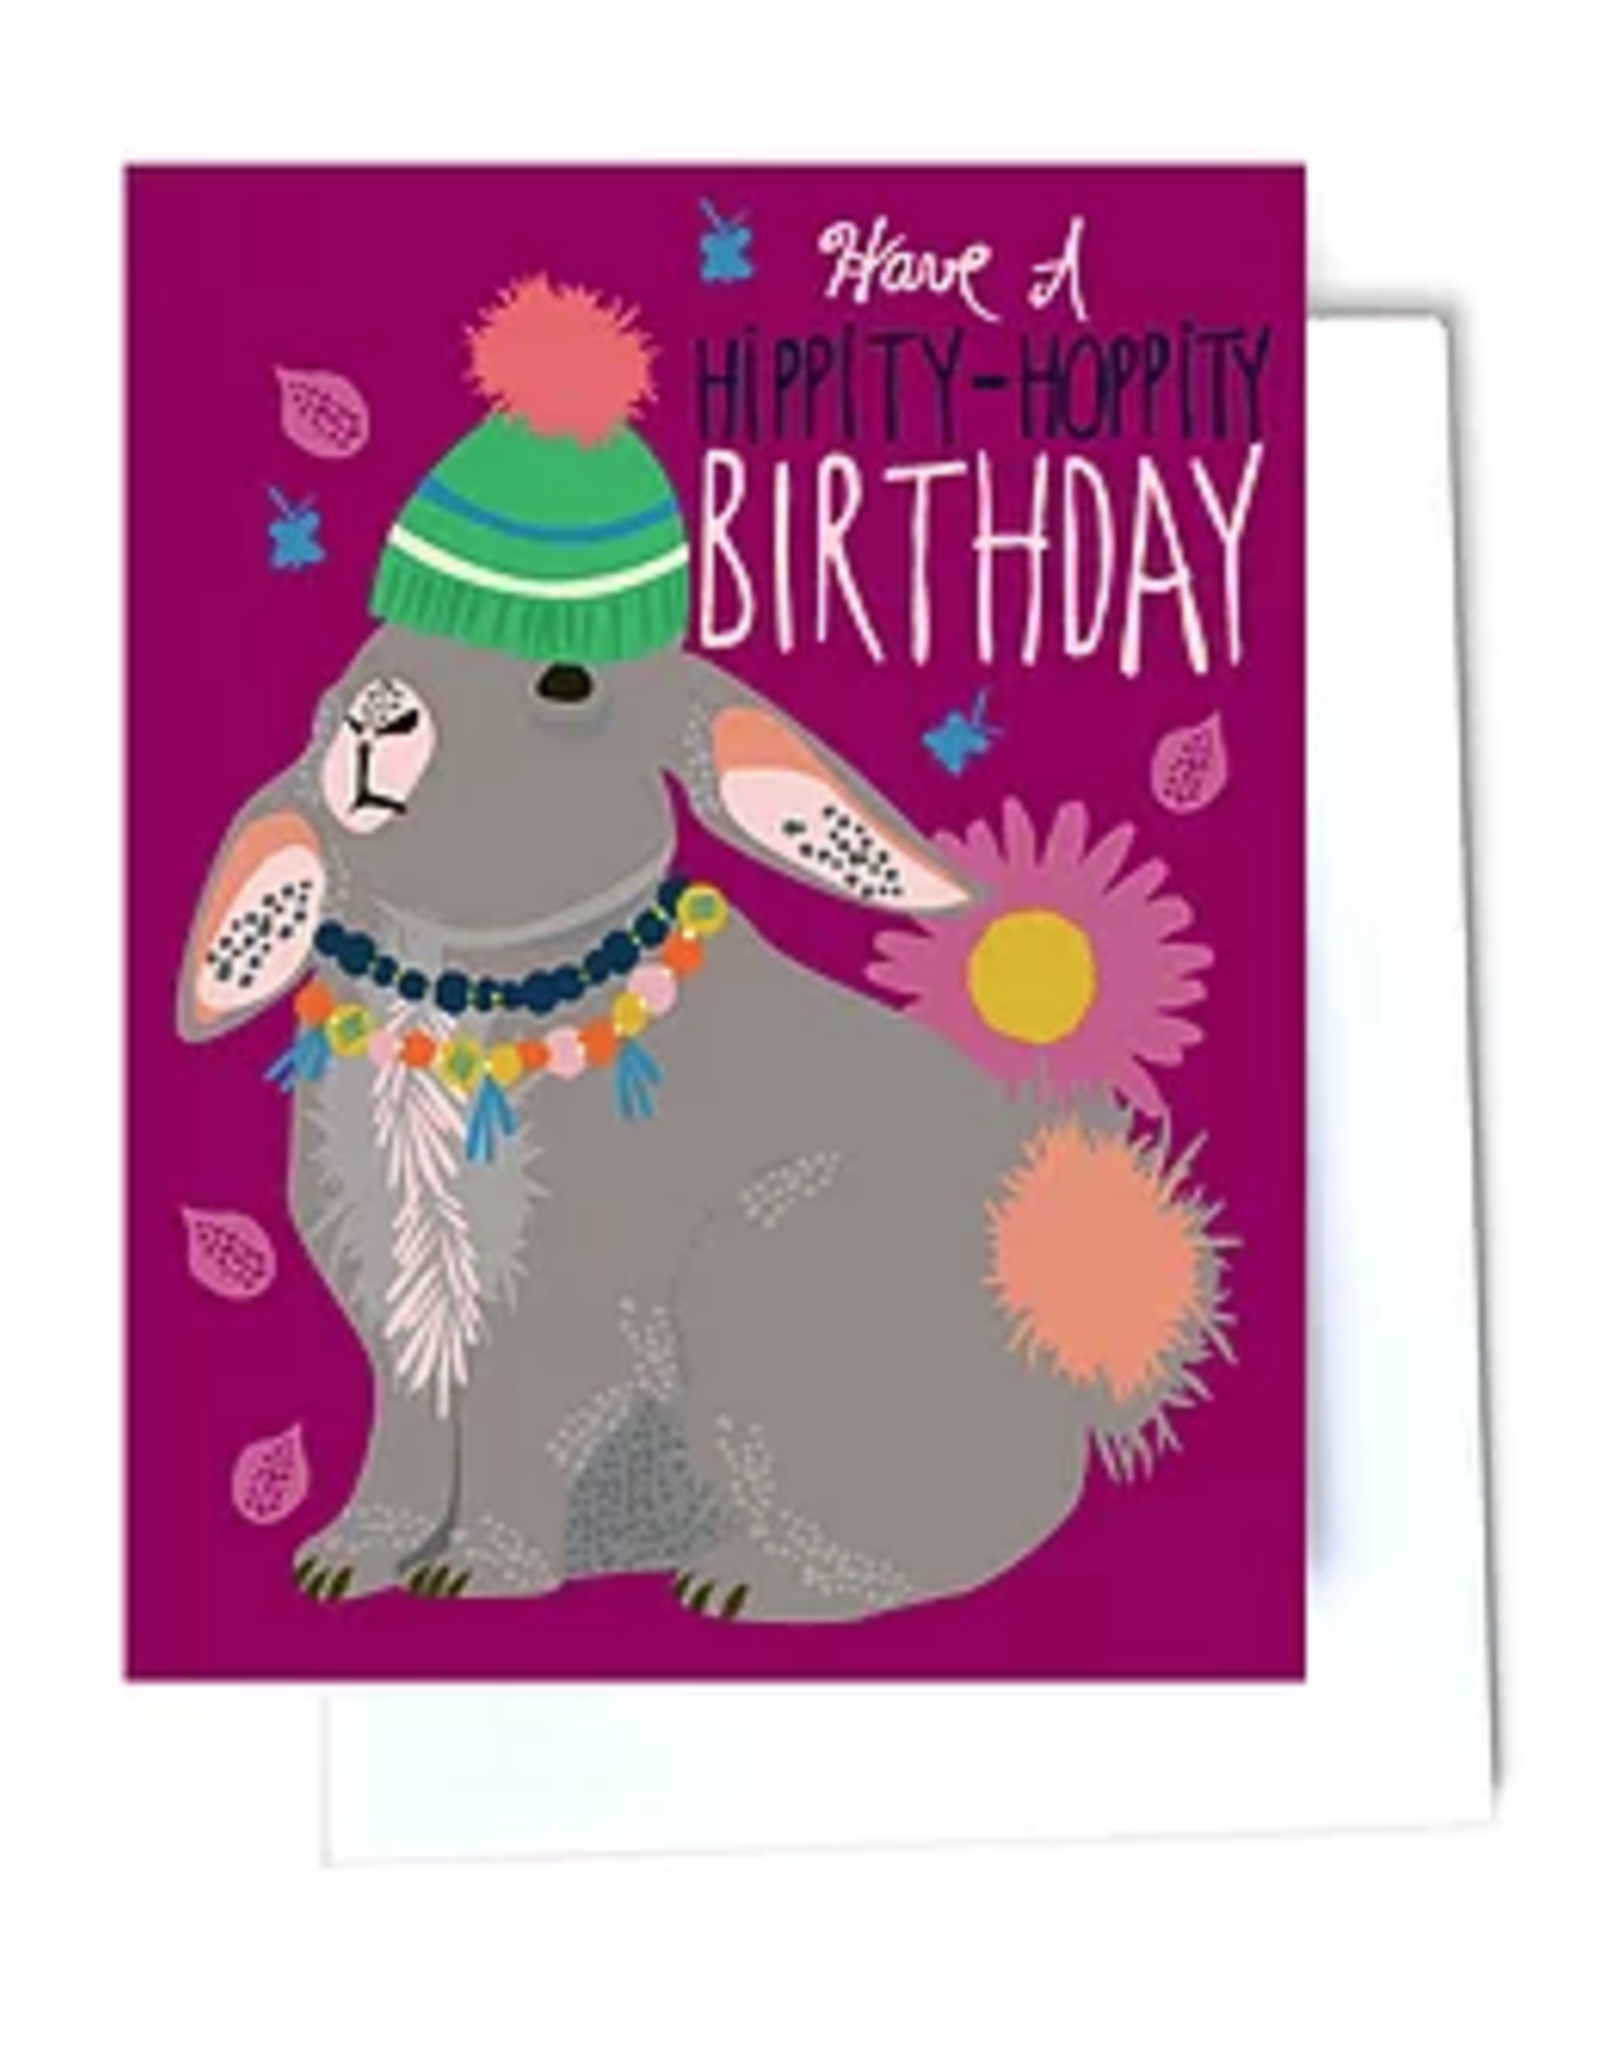 Hippity-Hoppity Birthday Greeting Card